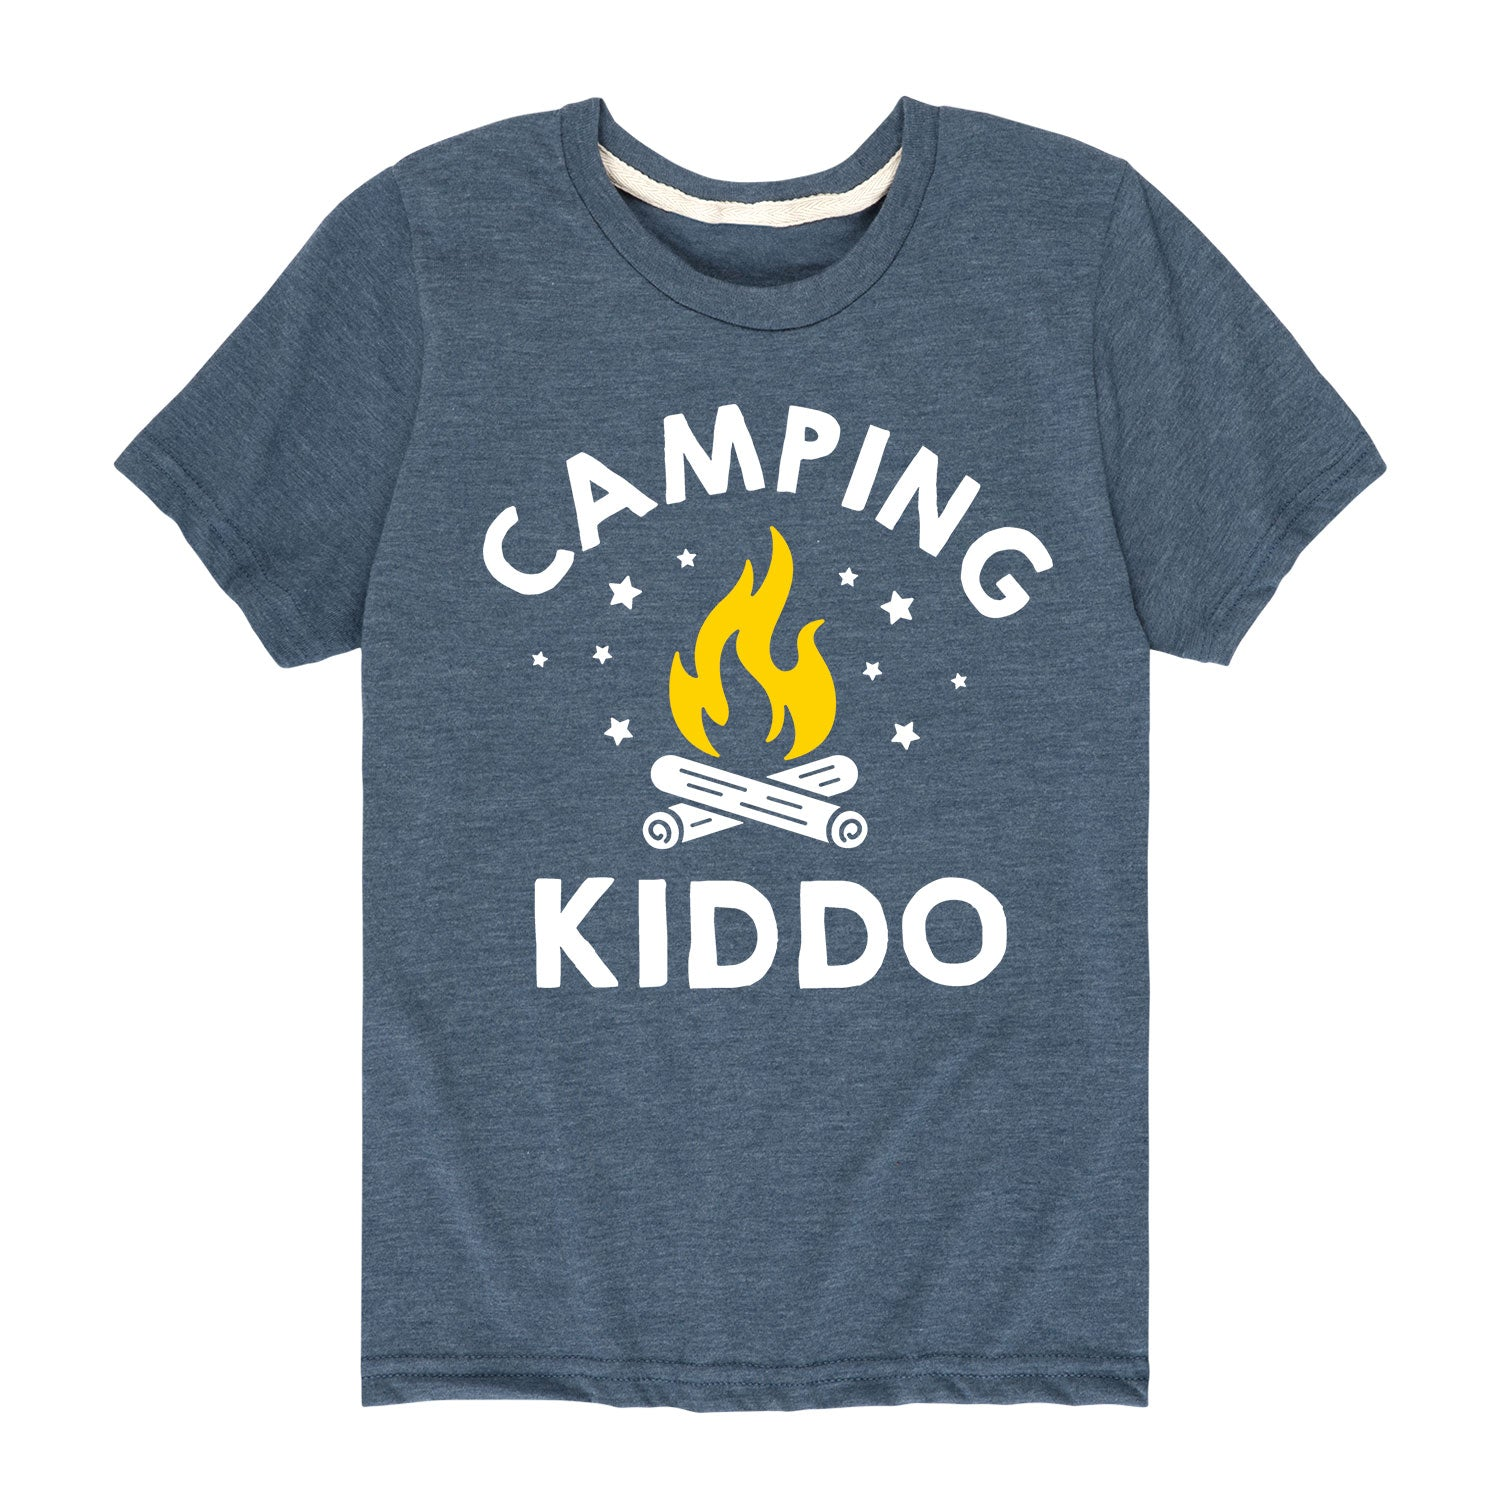 Camping Kiddo - Youth & Toddler Short Sleeve T-Shirt